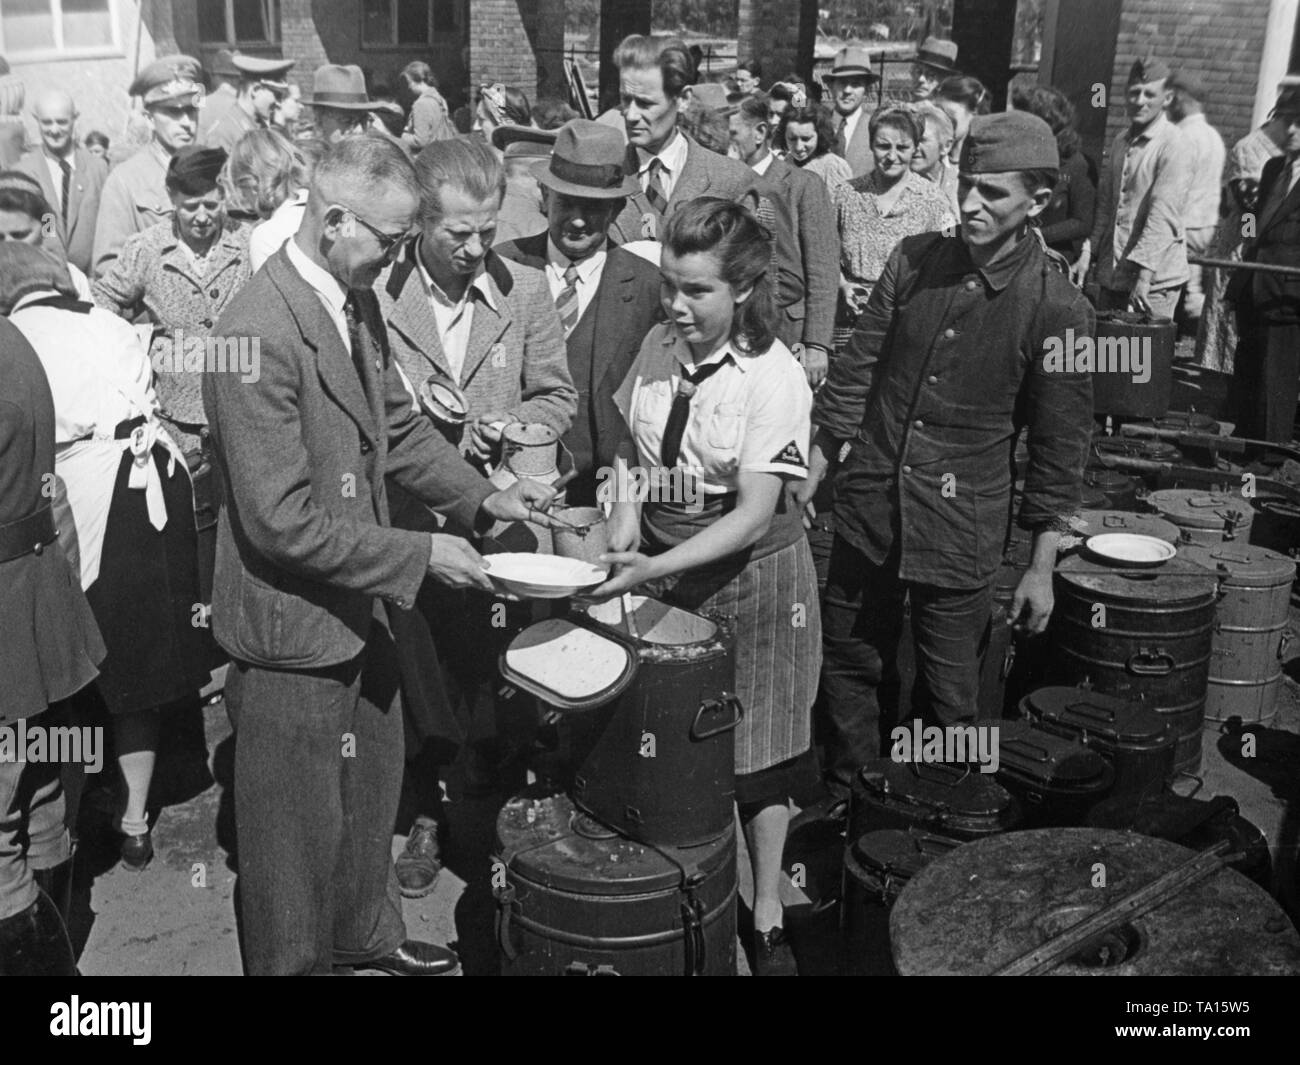 The BDM distributes warm food to bomb victims at a care center in Berlin. - Stock Image